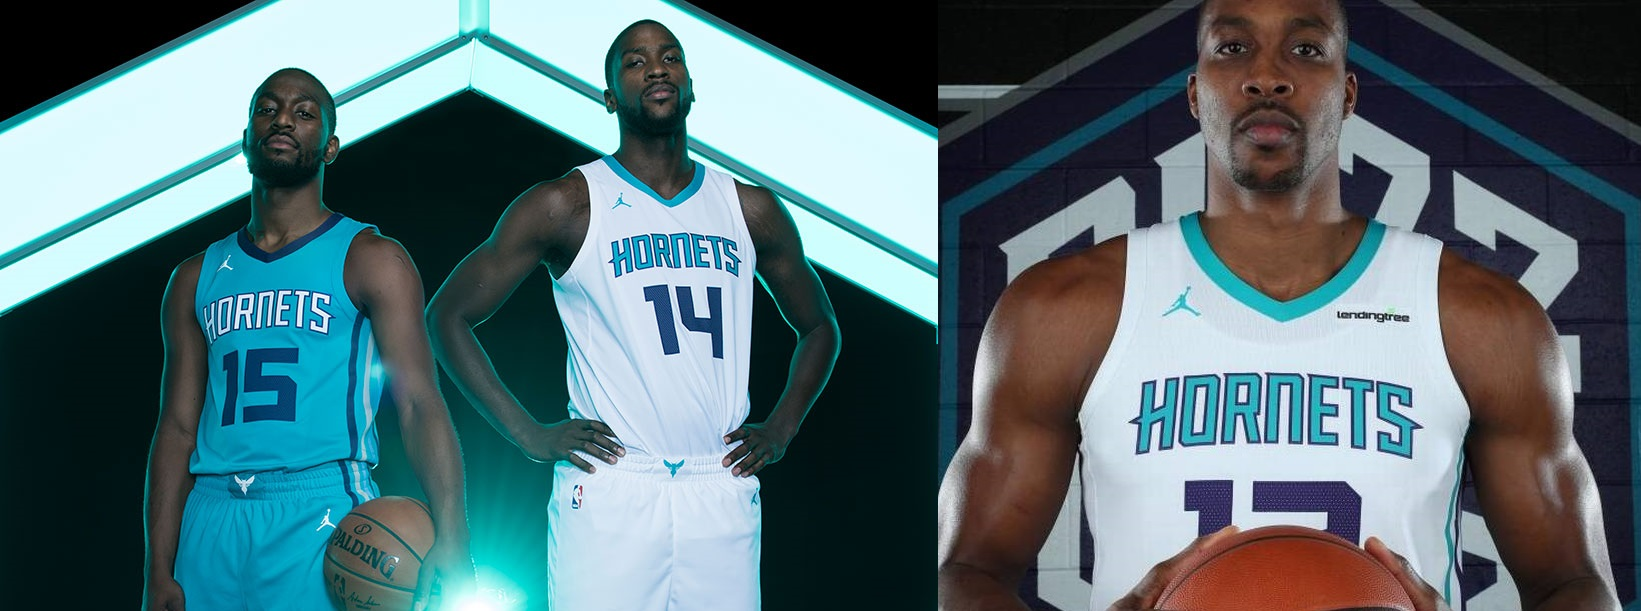 (Left)  This is how the jerseys were supposed to look. Clean AF  (Pictured: Kemba Walker, Michael Kidd-Gilchrist) (Right)  This is when they sold out  (Pictured: Dwight Howard)